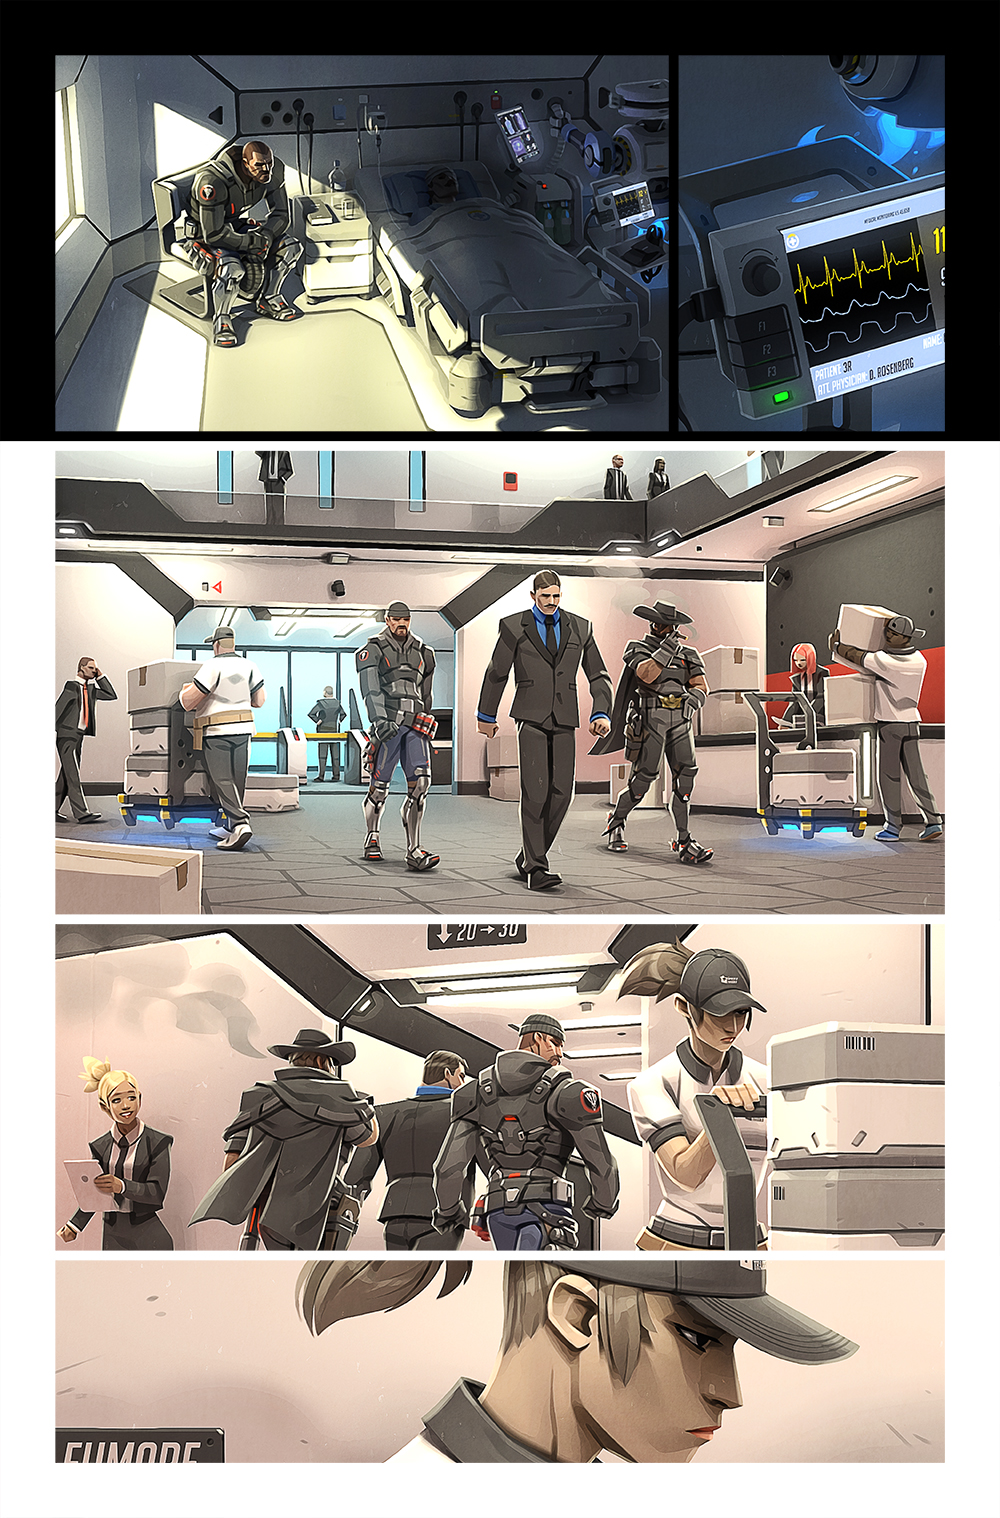 Image of: Masquerade Blackwatch Agents Are Tasked With Apprehending The Mastermind But Their Plans Are Quickly Interruptedu2026 Overwatch Overwatch Digital Comic retribution News Overwatch